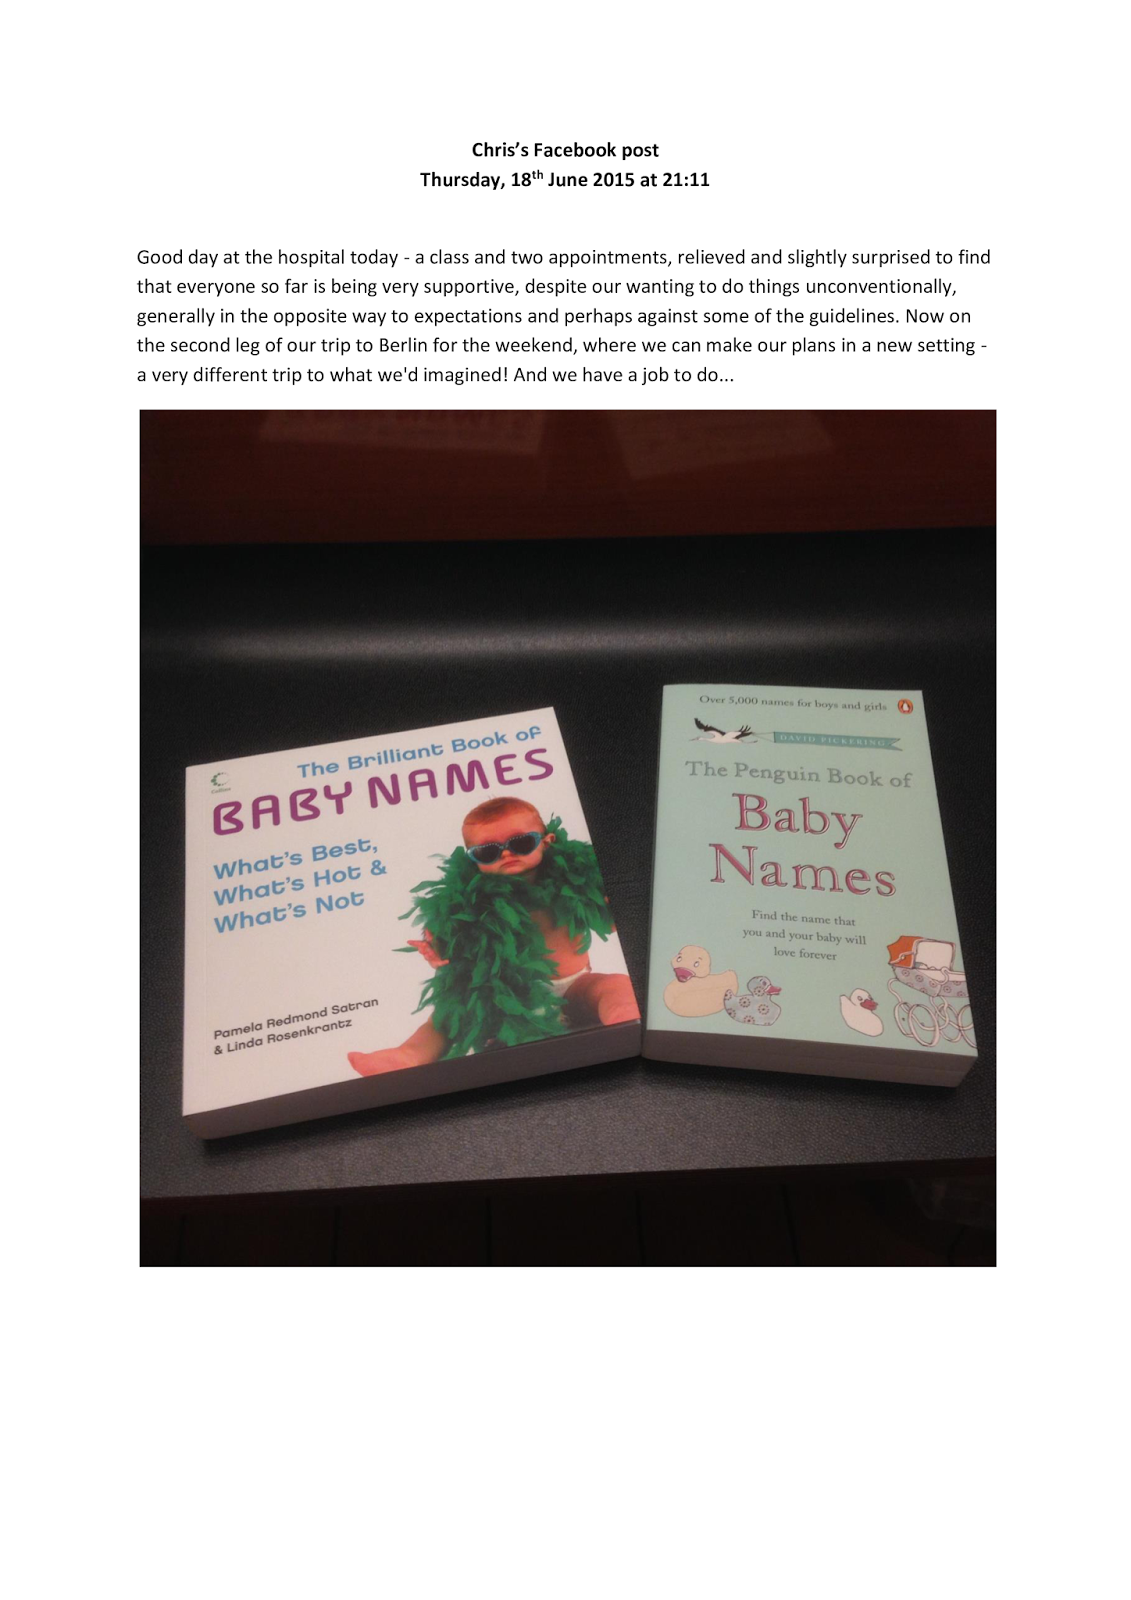 Chris's Facebook post with photo of baby names books